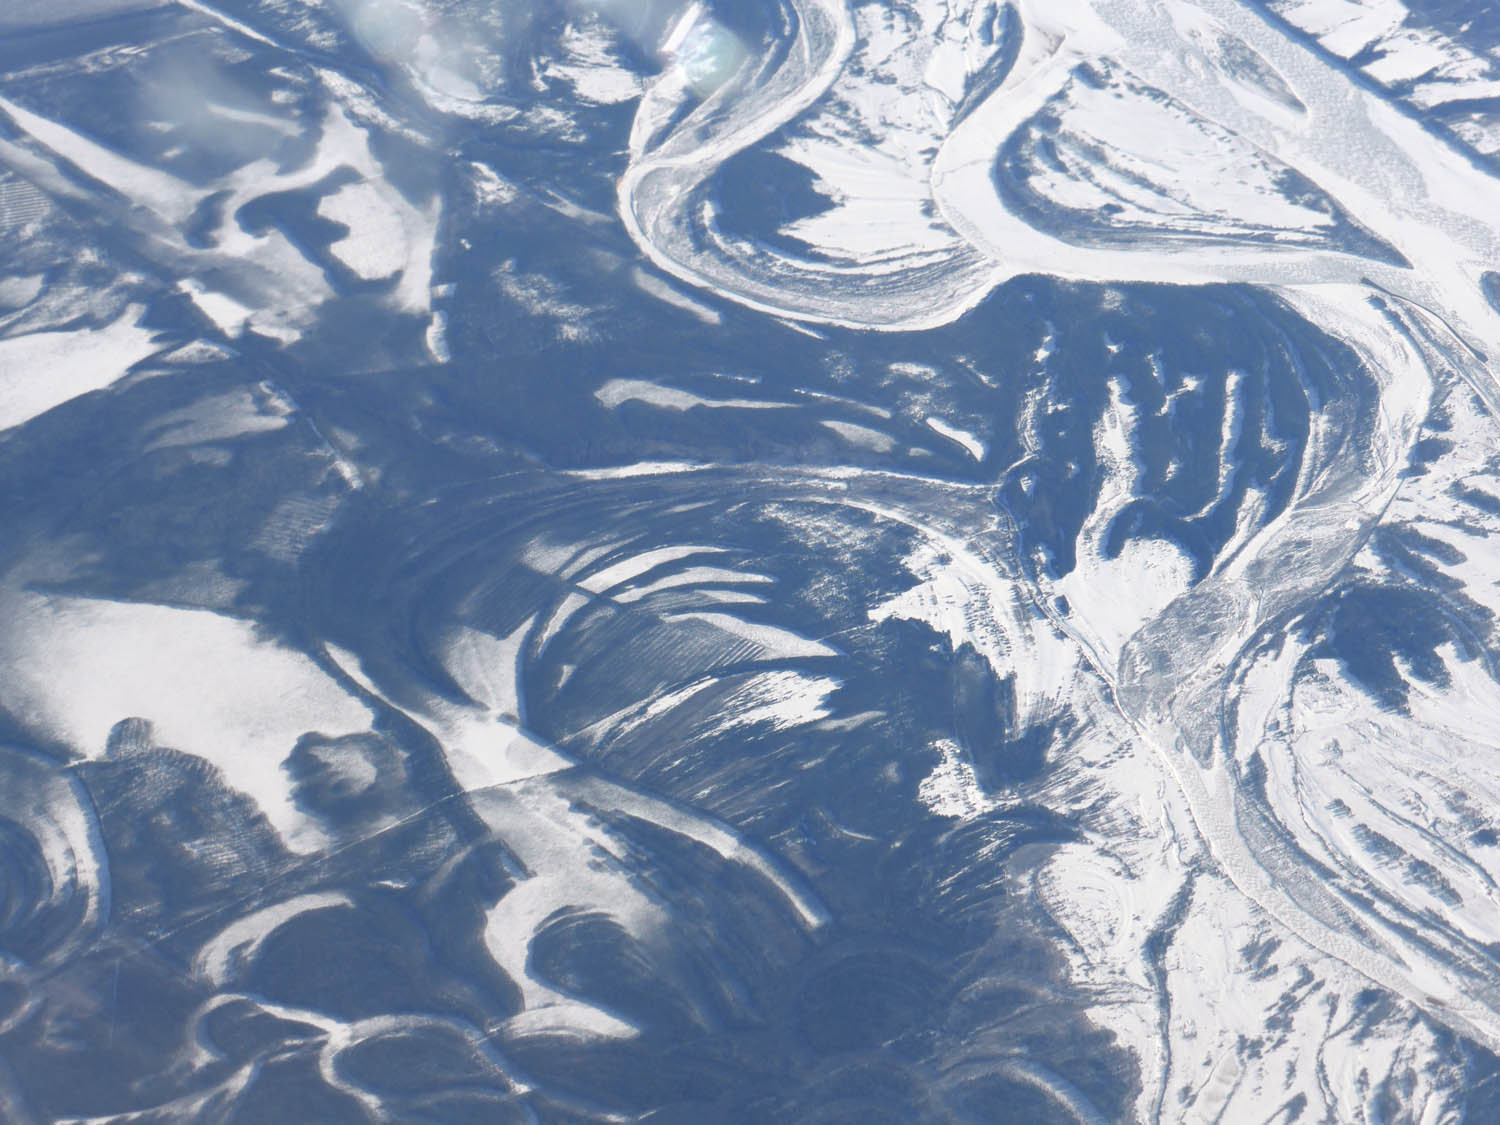 Frozen rivers and maybe farmland